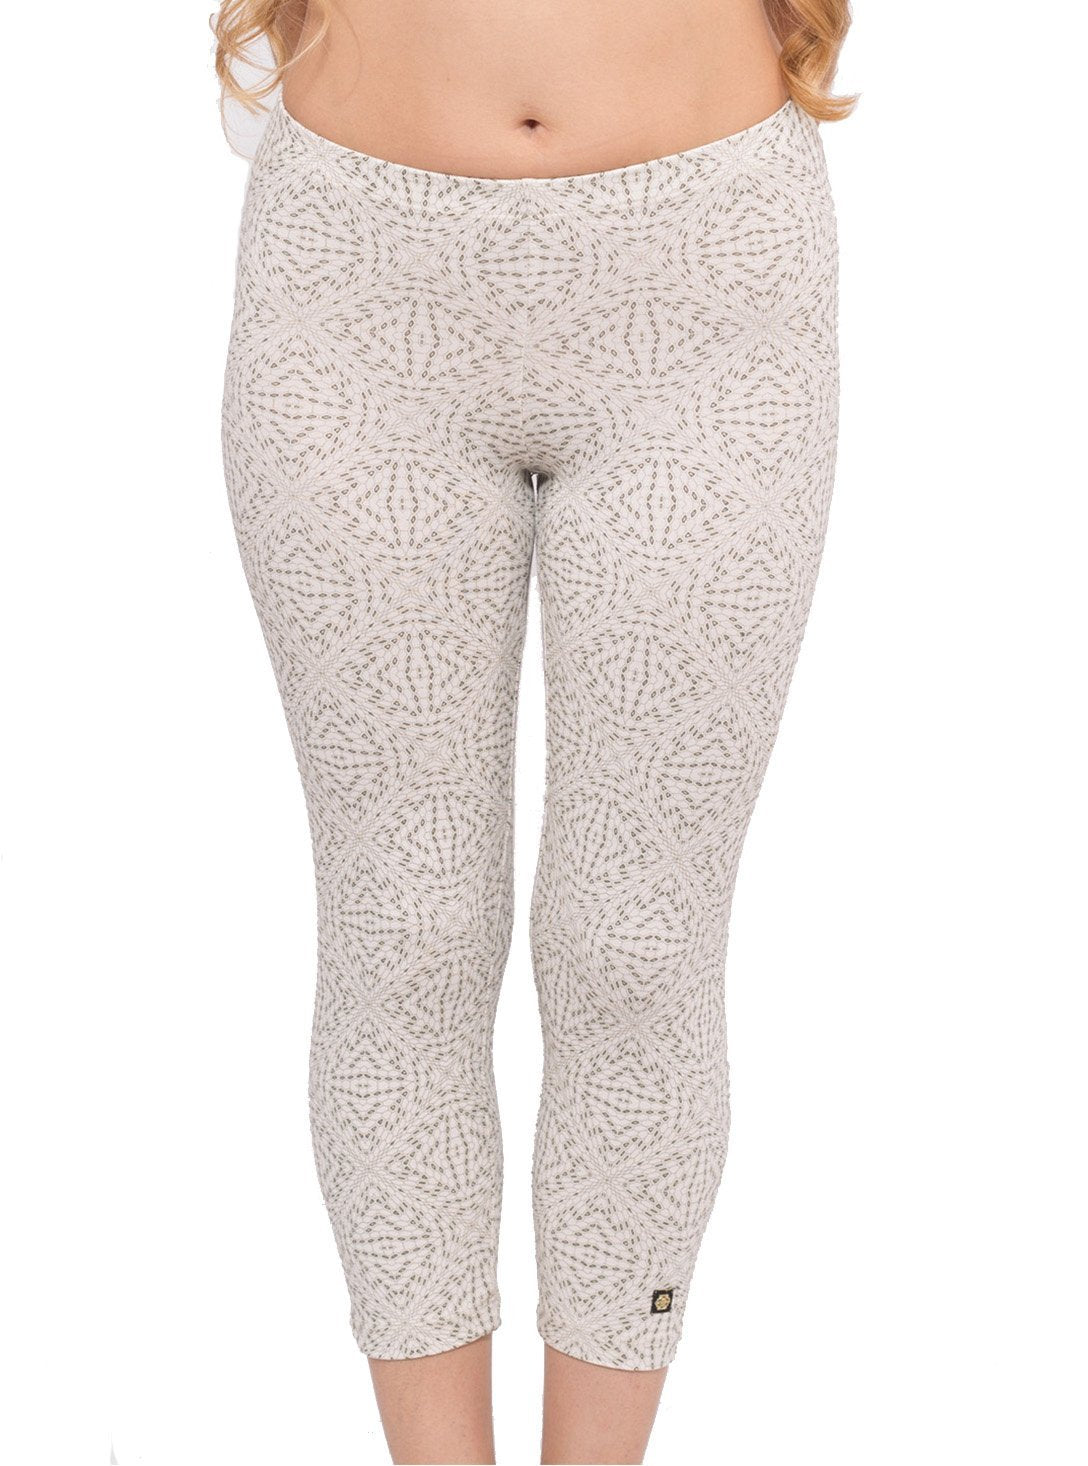 ff886d04fcef3a Hexit Psychedelic Printed Leggings Yoga Workout Capri Cropped Pants in White  - Street Habit